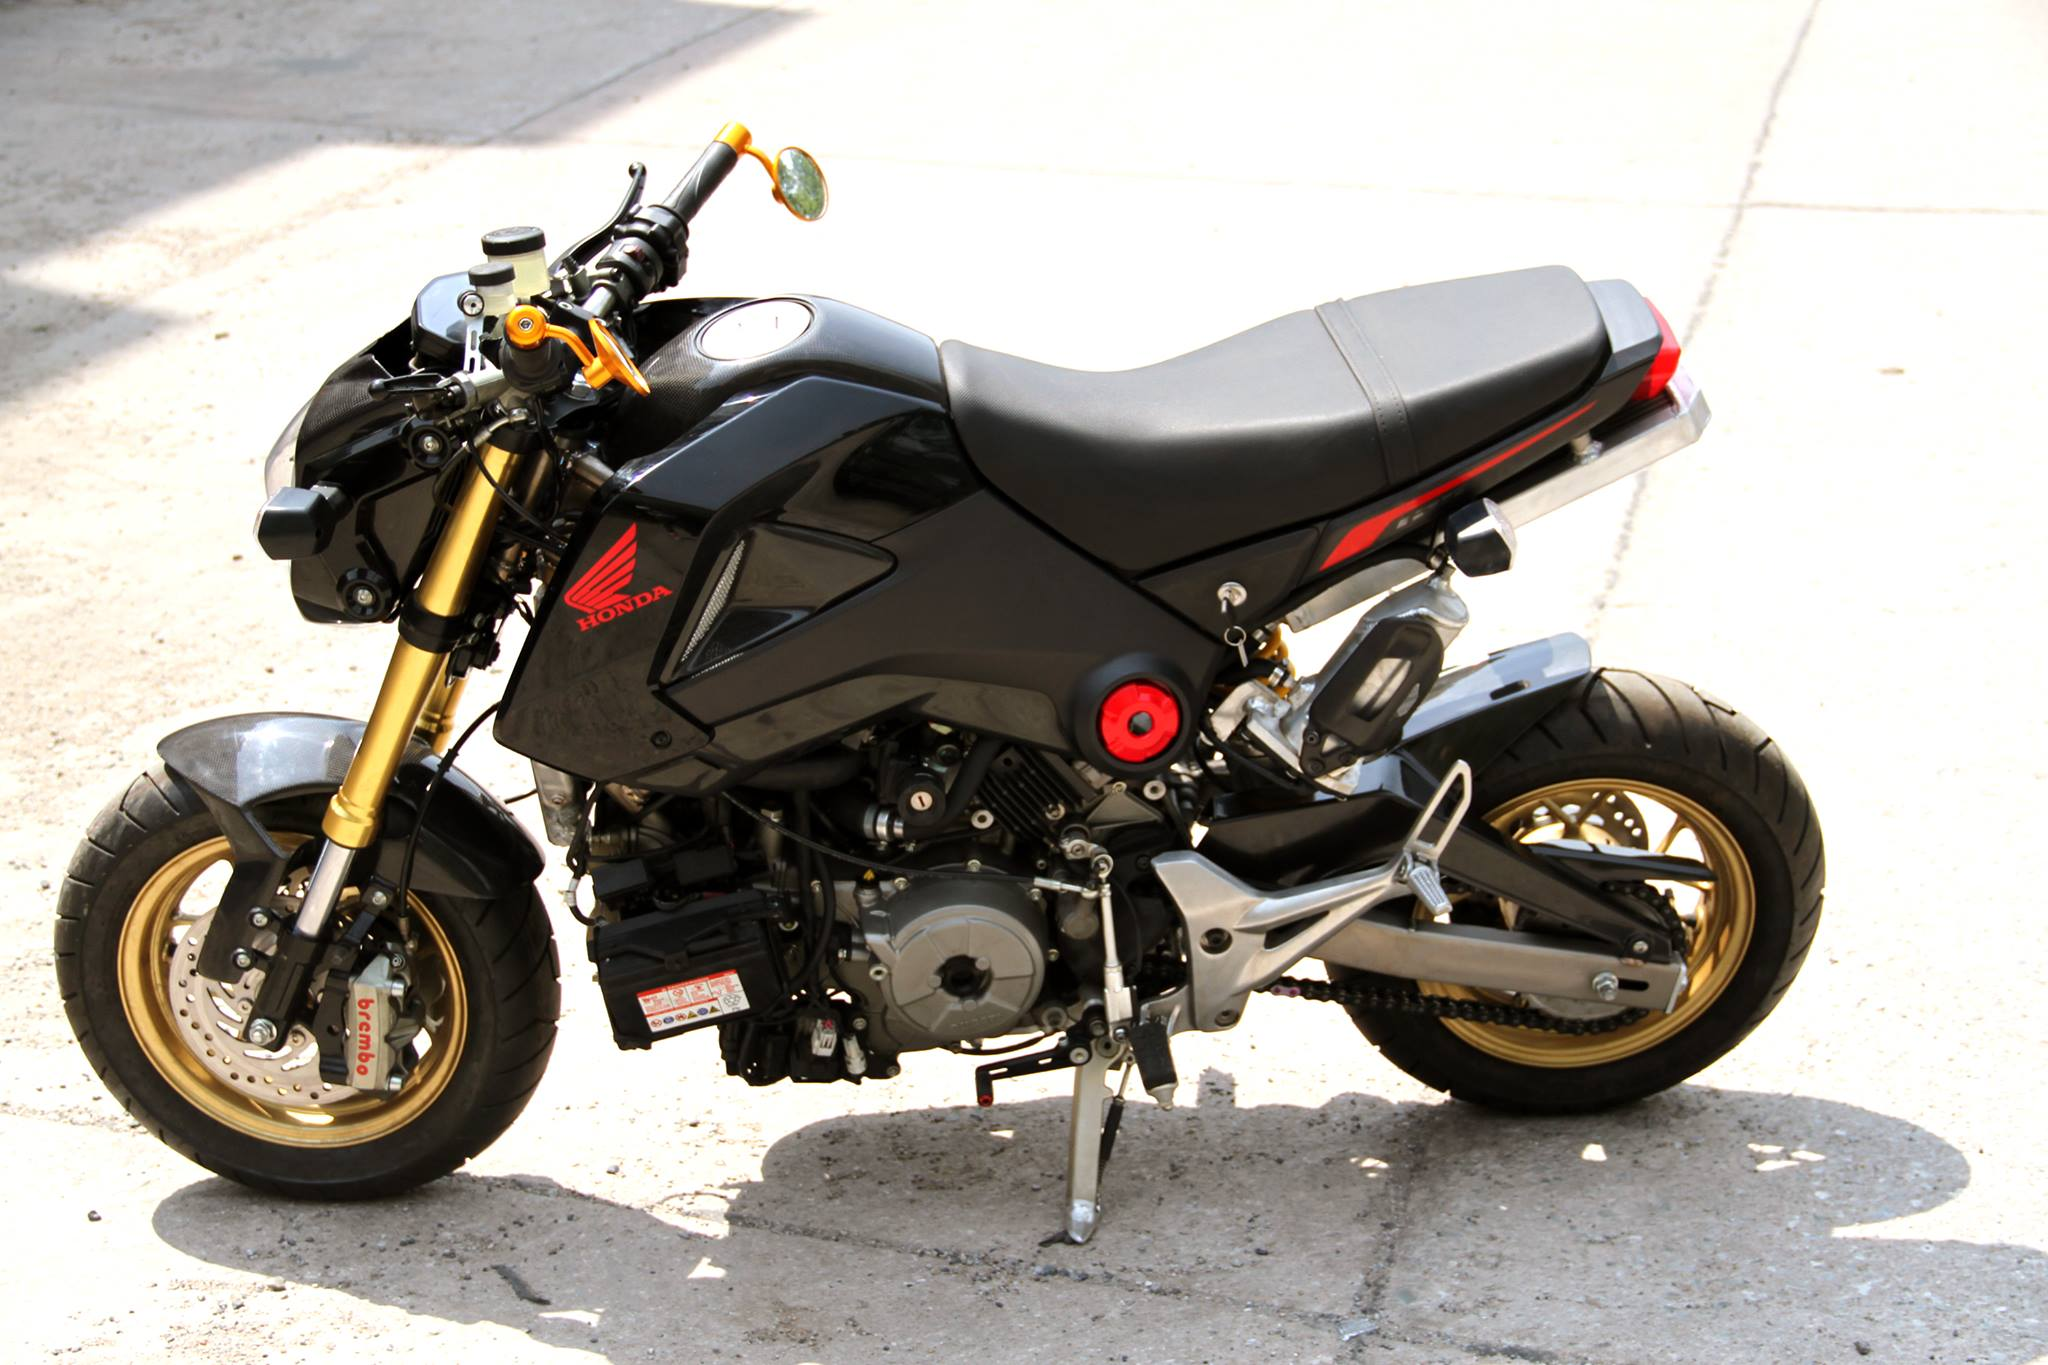 Honda Grom Build >> Honda Grom with a Ducati 1199 Panigale R Engine - engineswapdepot.com